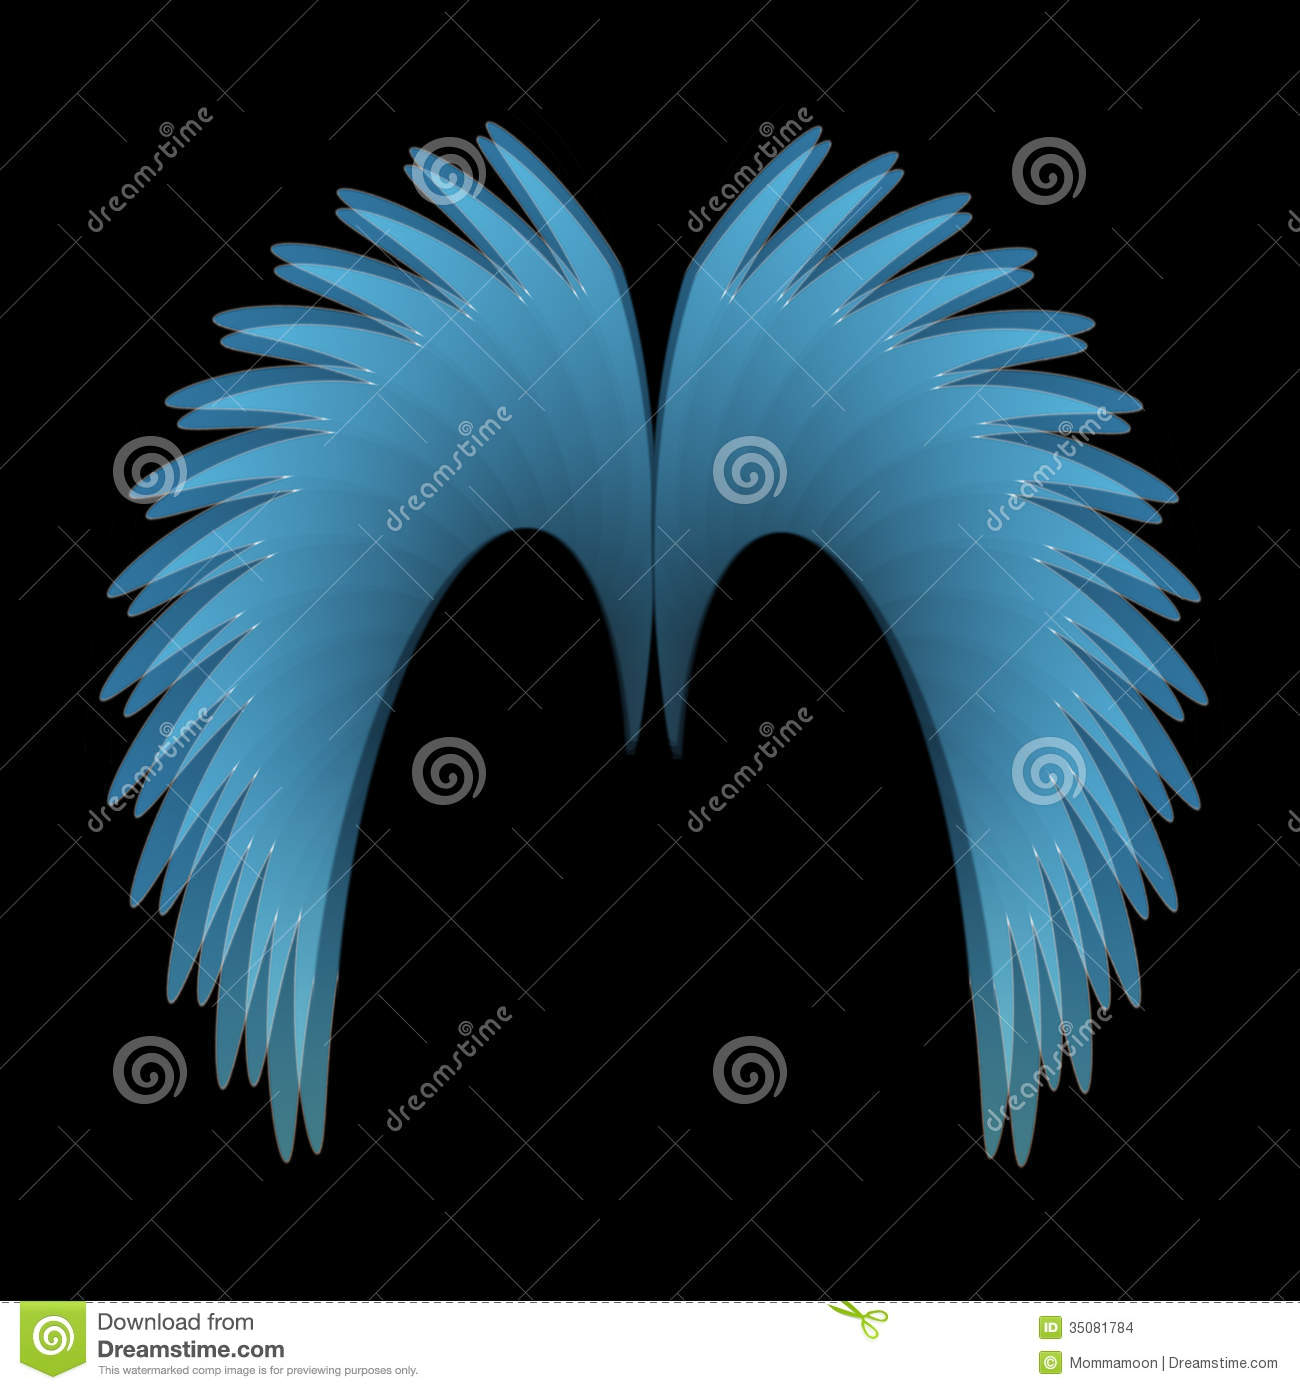 angel wings black background - photo #19